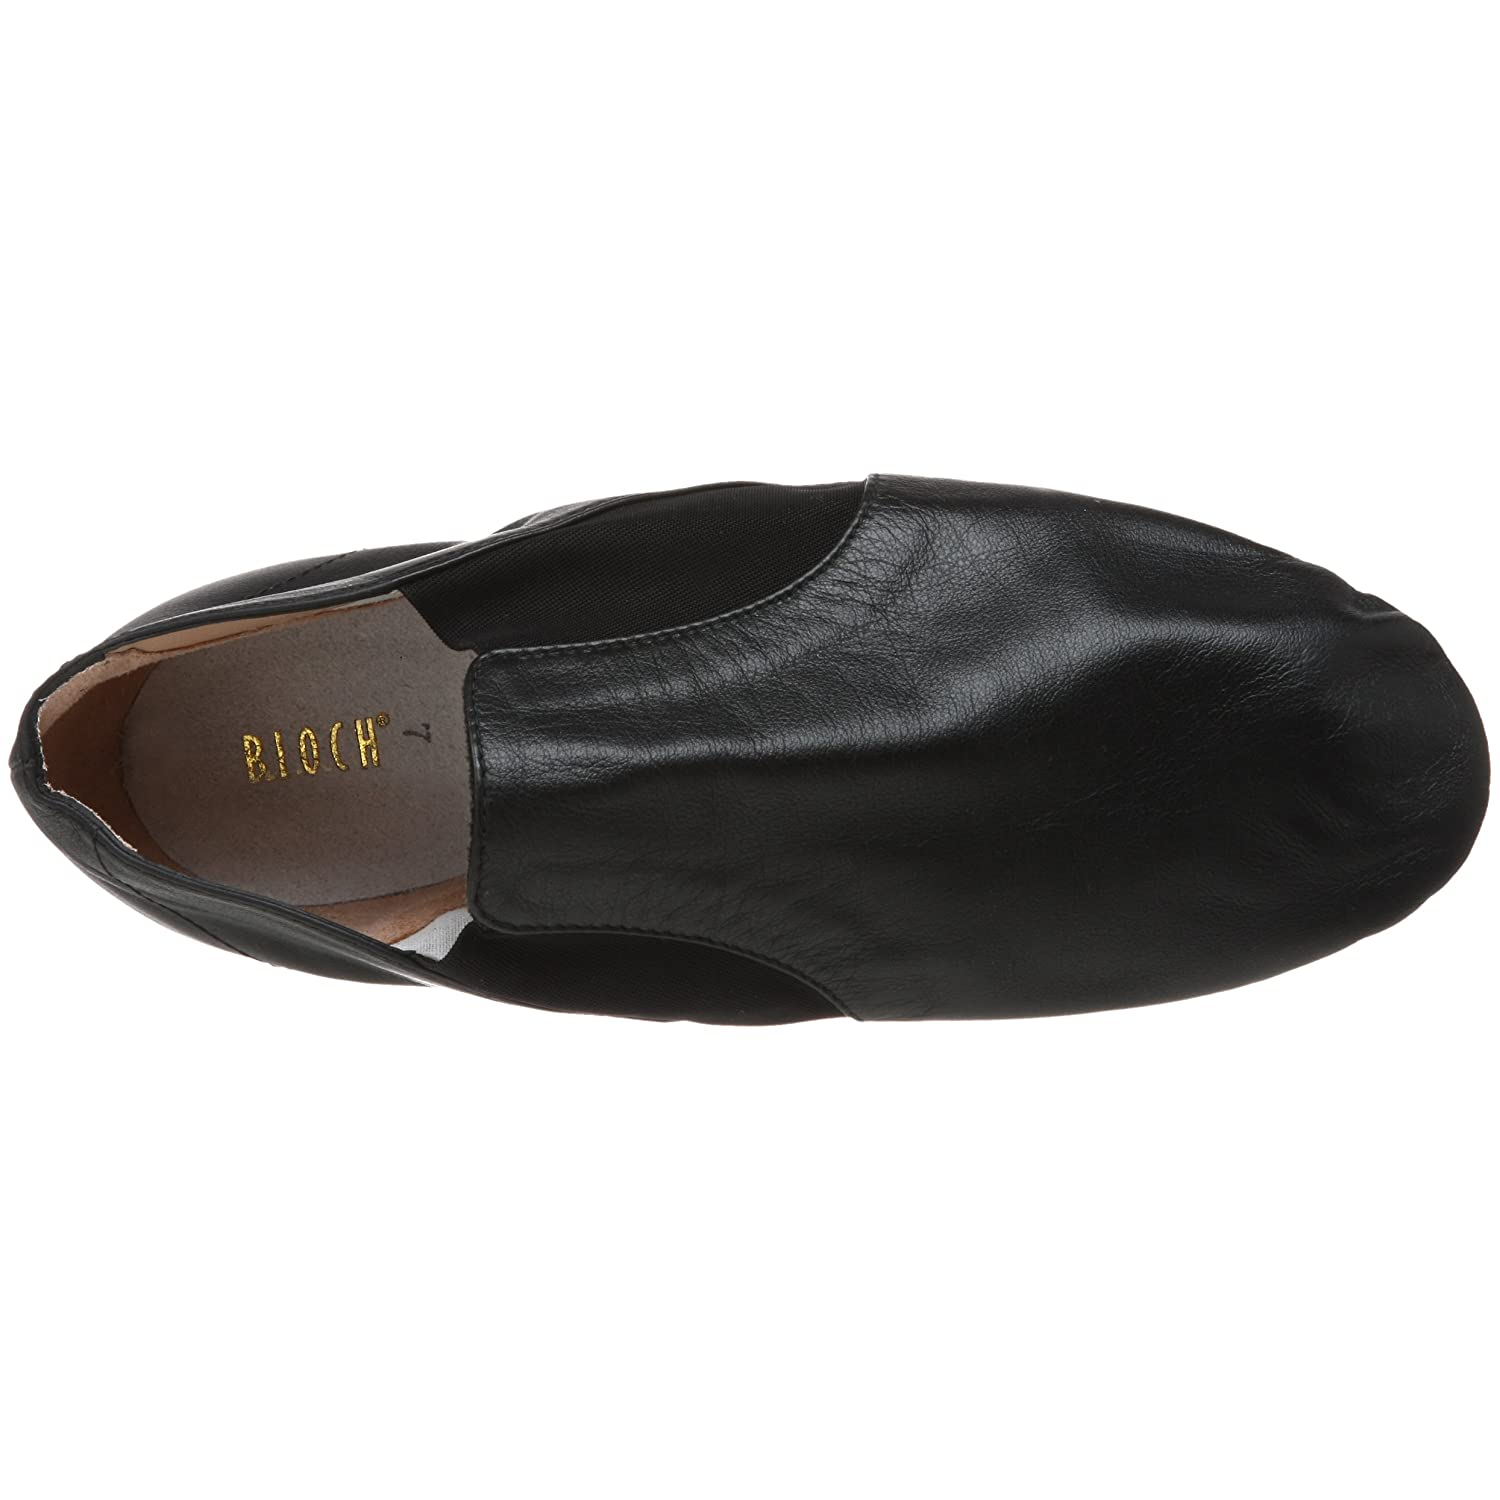 Bloch Women's Elasta X(Medium) Jazz Shoe B0041IXHUW 11 X(Medium) Elasta US|Black 09f705